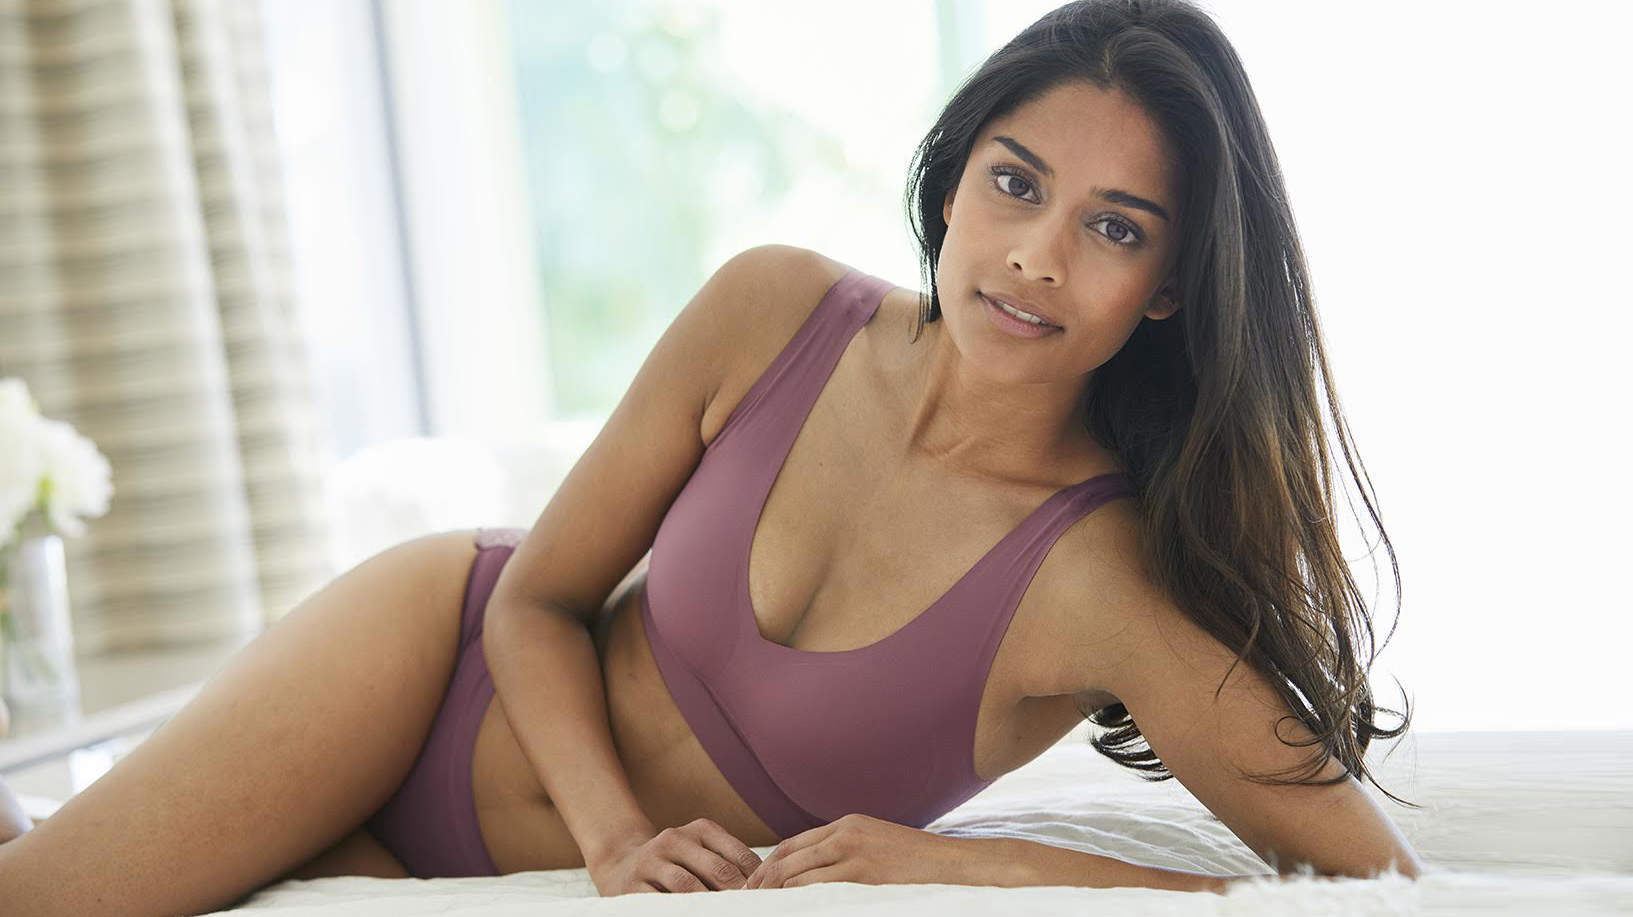 I Never Liked Wearing Bras—Until I Found This Ridiculously Comfortable Seamless Bralette